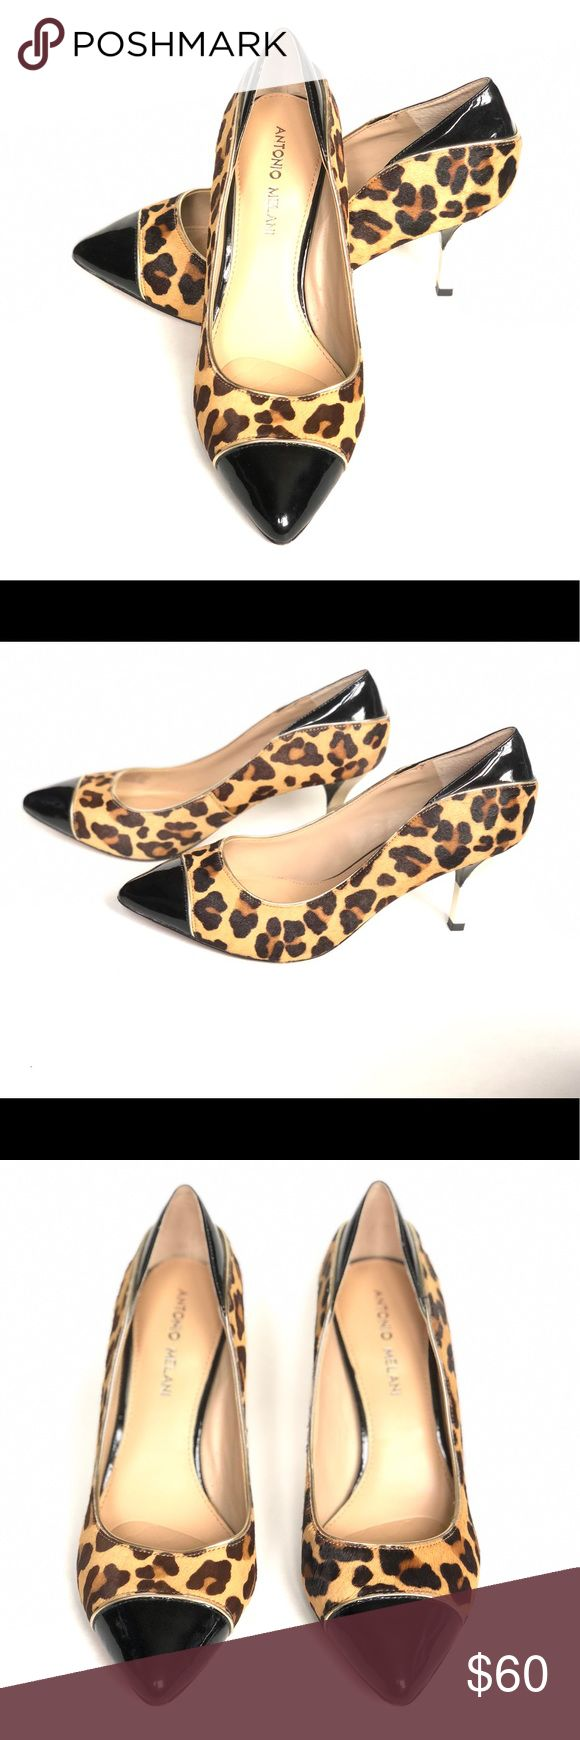 Antonio Melani Leopard Calf Hair Heels Size 8M Antonio Melani Leopard Calf Hair Heels Size 8M. Has some scuffs and wear (pictured) but overall are in good condition.  3 inch heel. ANTONIO MELANI Shoes Heels